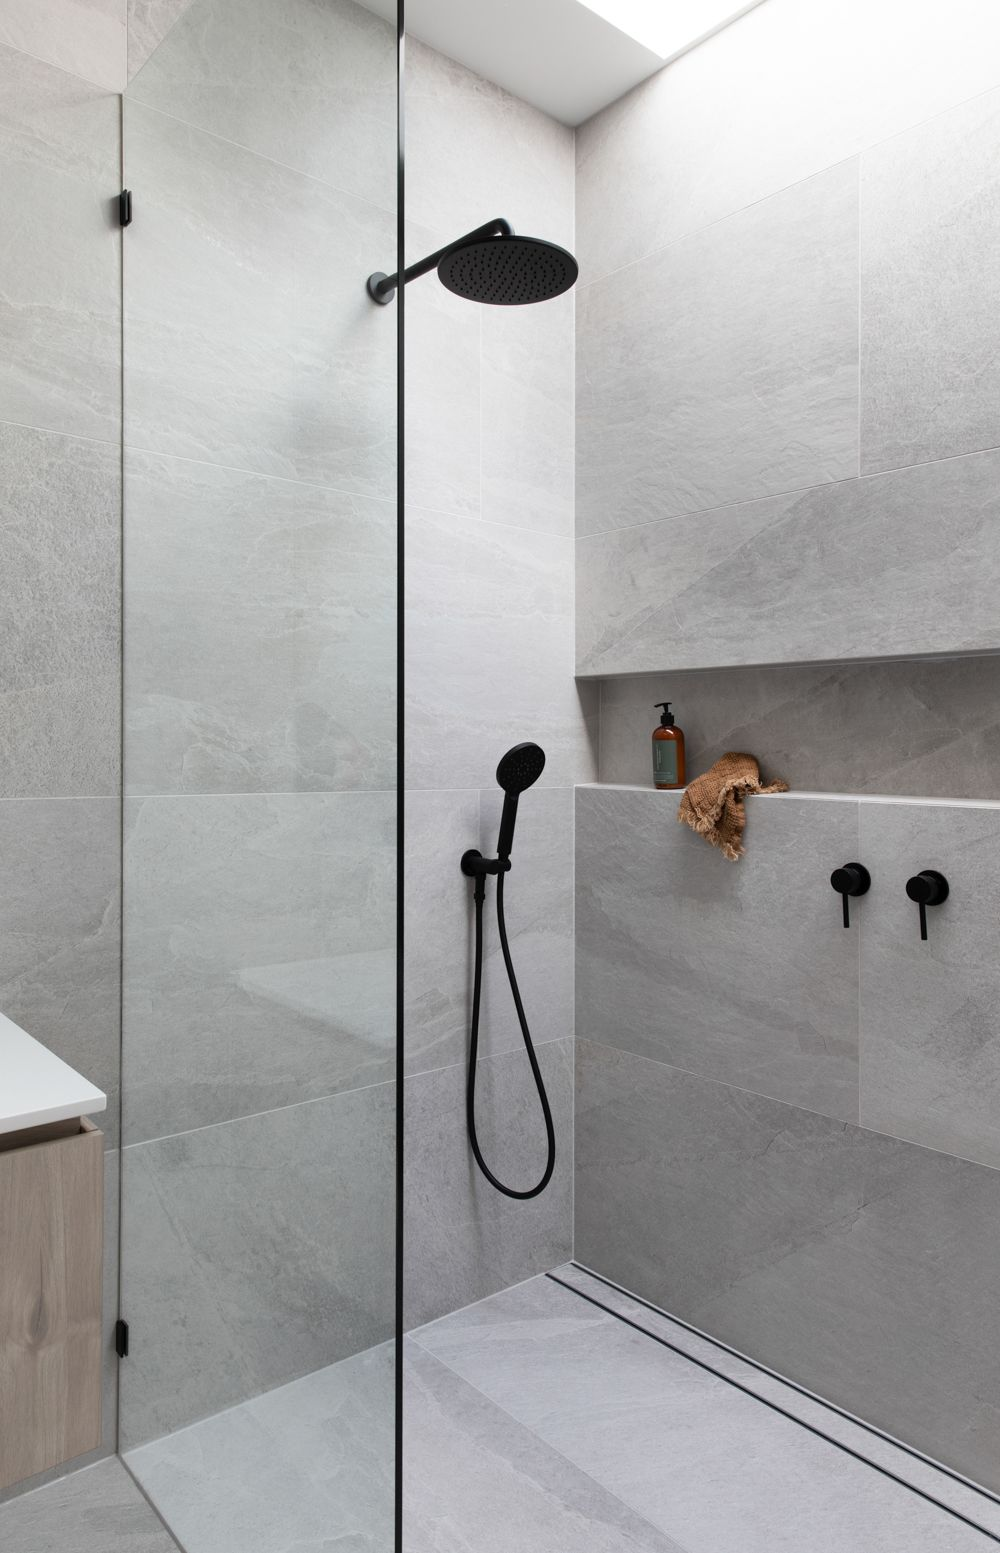 Bathrooms with large format tiles are beautiful and practical, with large seamless surfaces and less grout lines to clean. But planning is key to ensure good fall to your shower, without the need for numerous tile cuts. Click to read our blog on how to plan for this for your new bathroom, with Lauxes Grates Linear Floor Wastes.  Follow us on Instagram and Pinterest for all the latest home, reno and design tips, trends and products.